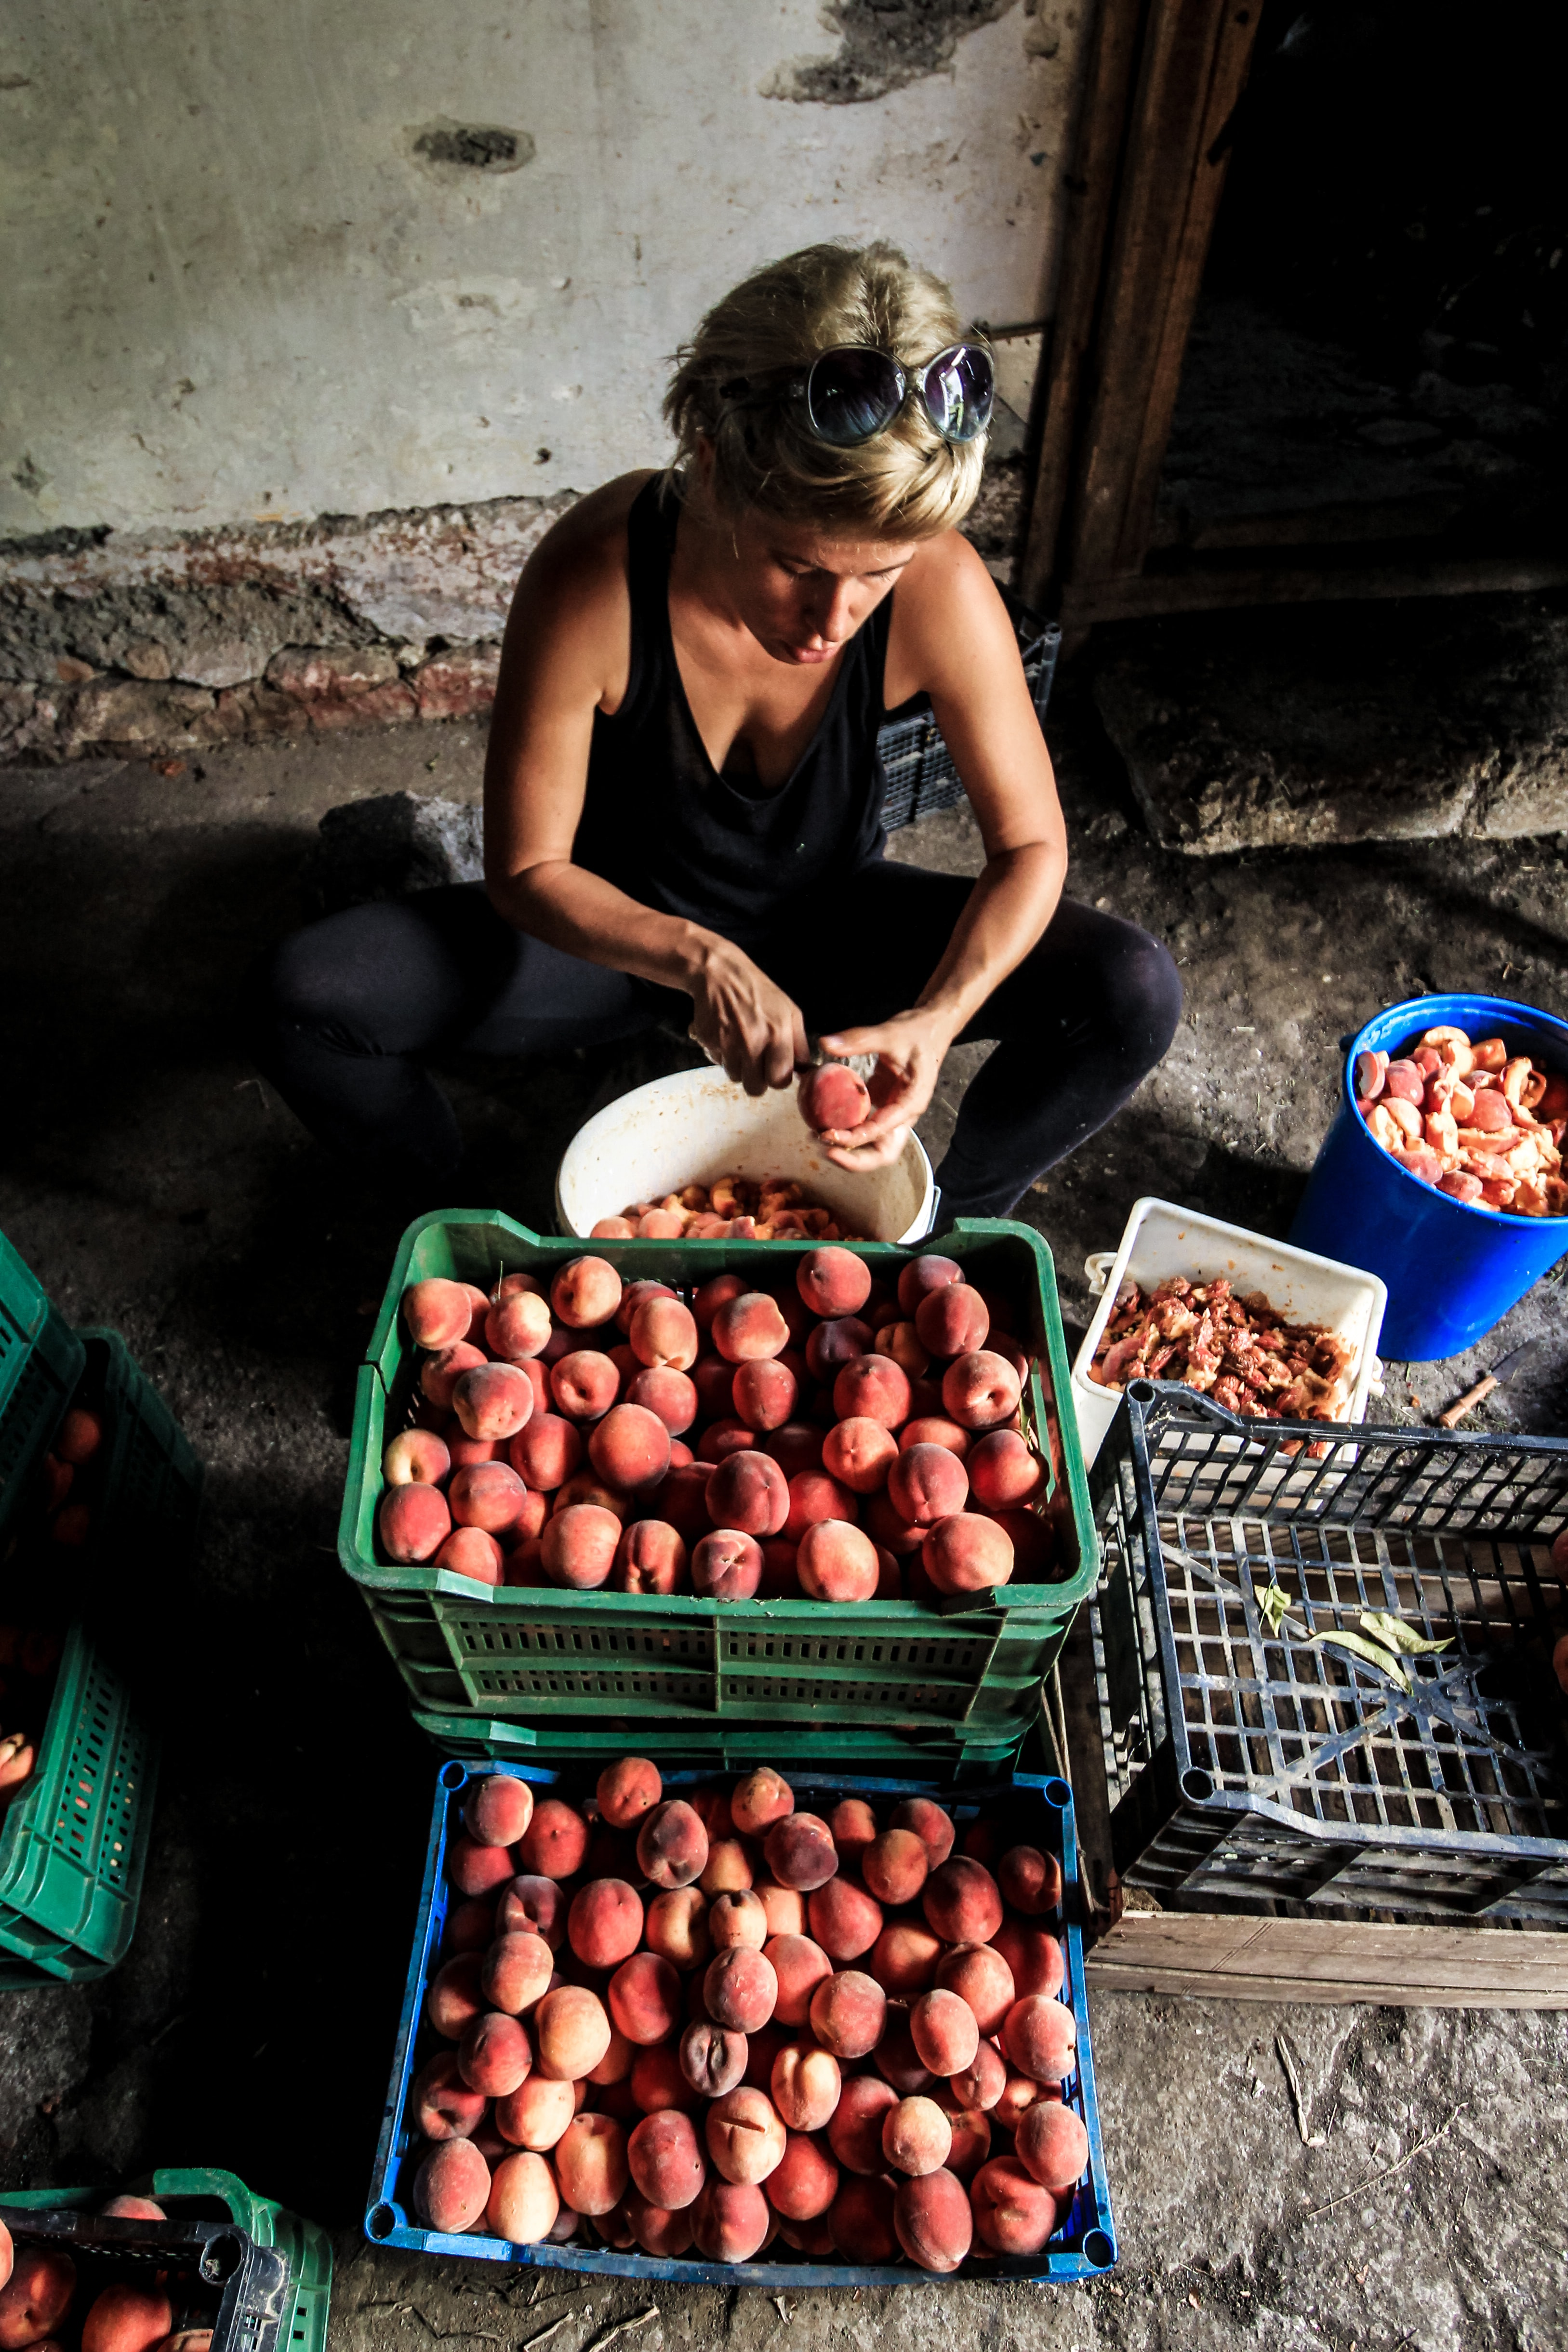 woman peeling fruits